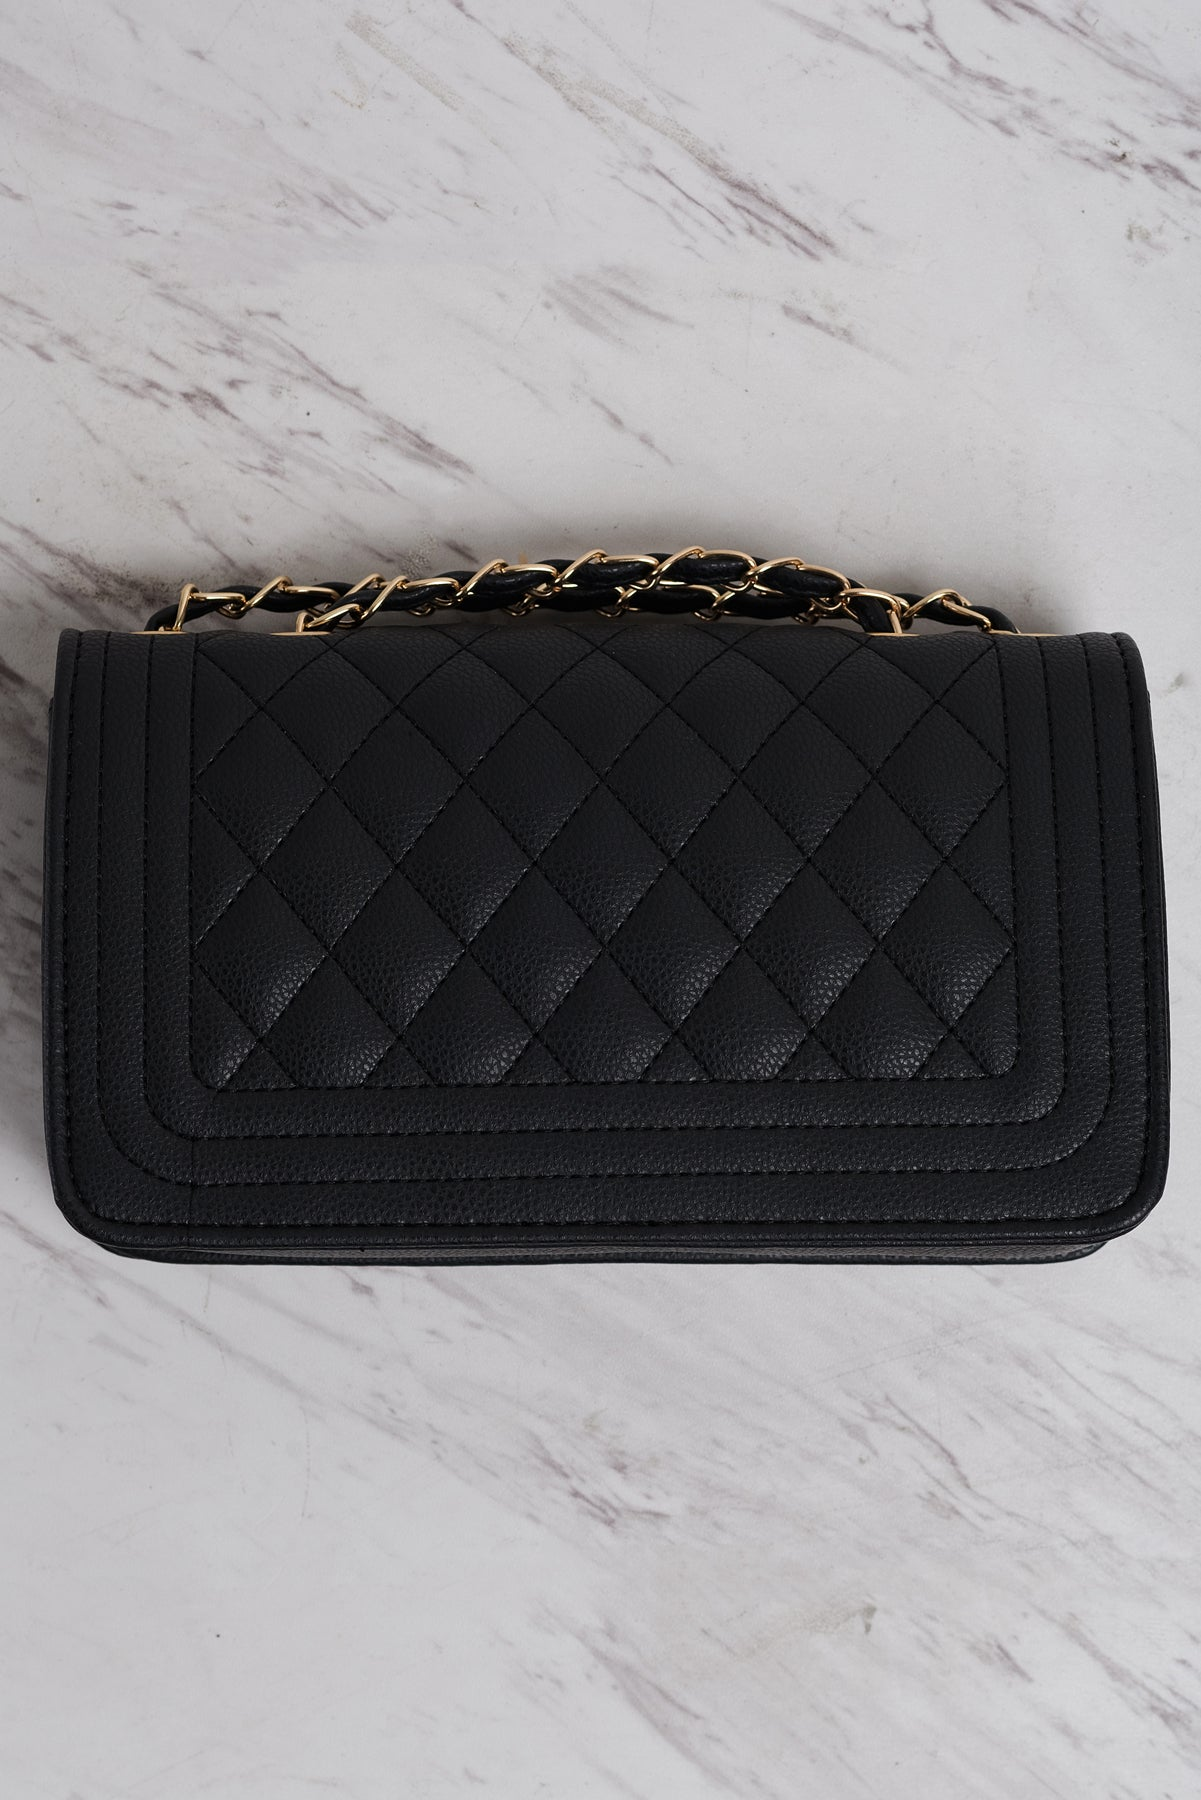 Candance Chained Purse - Black